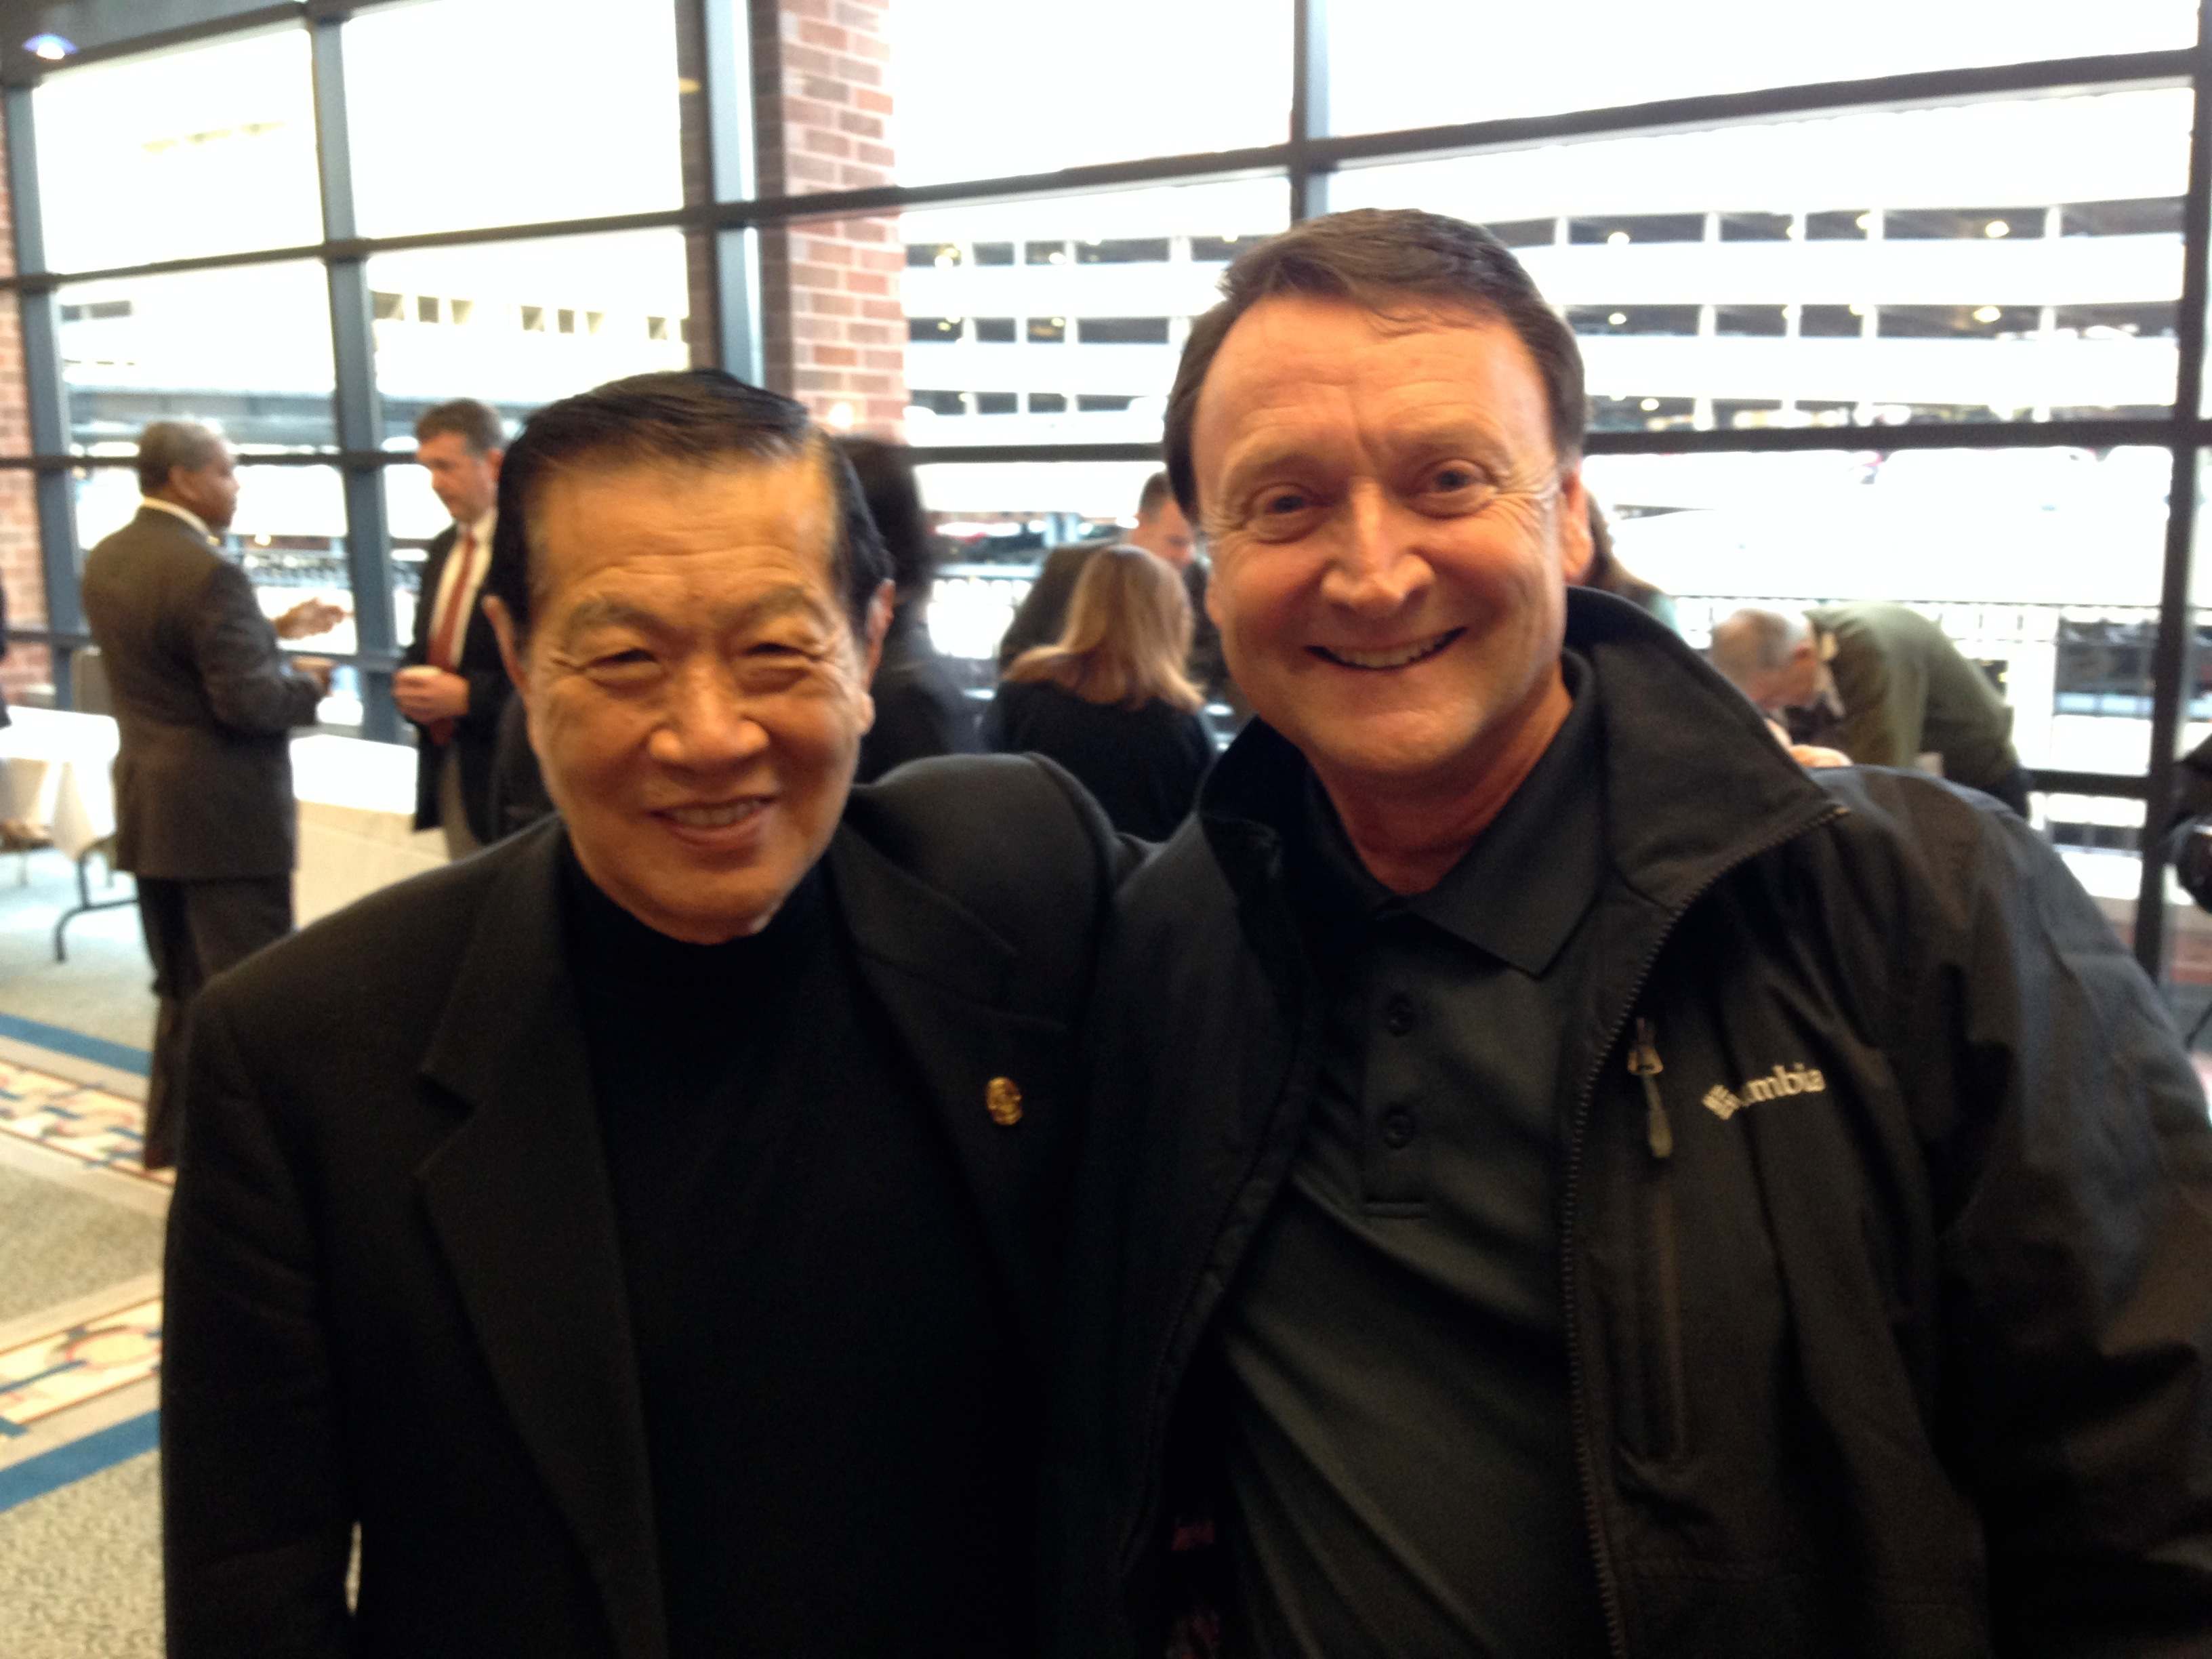 Dr. Henry Lee and Tim Warco